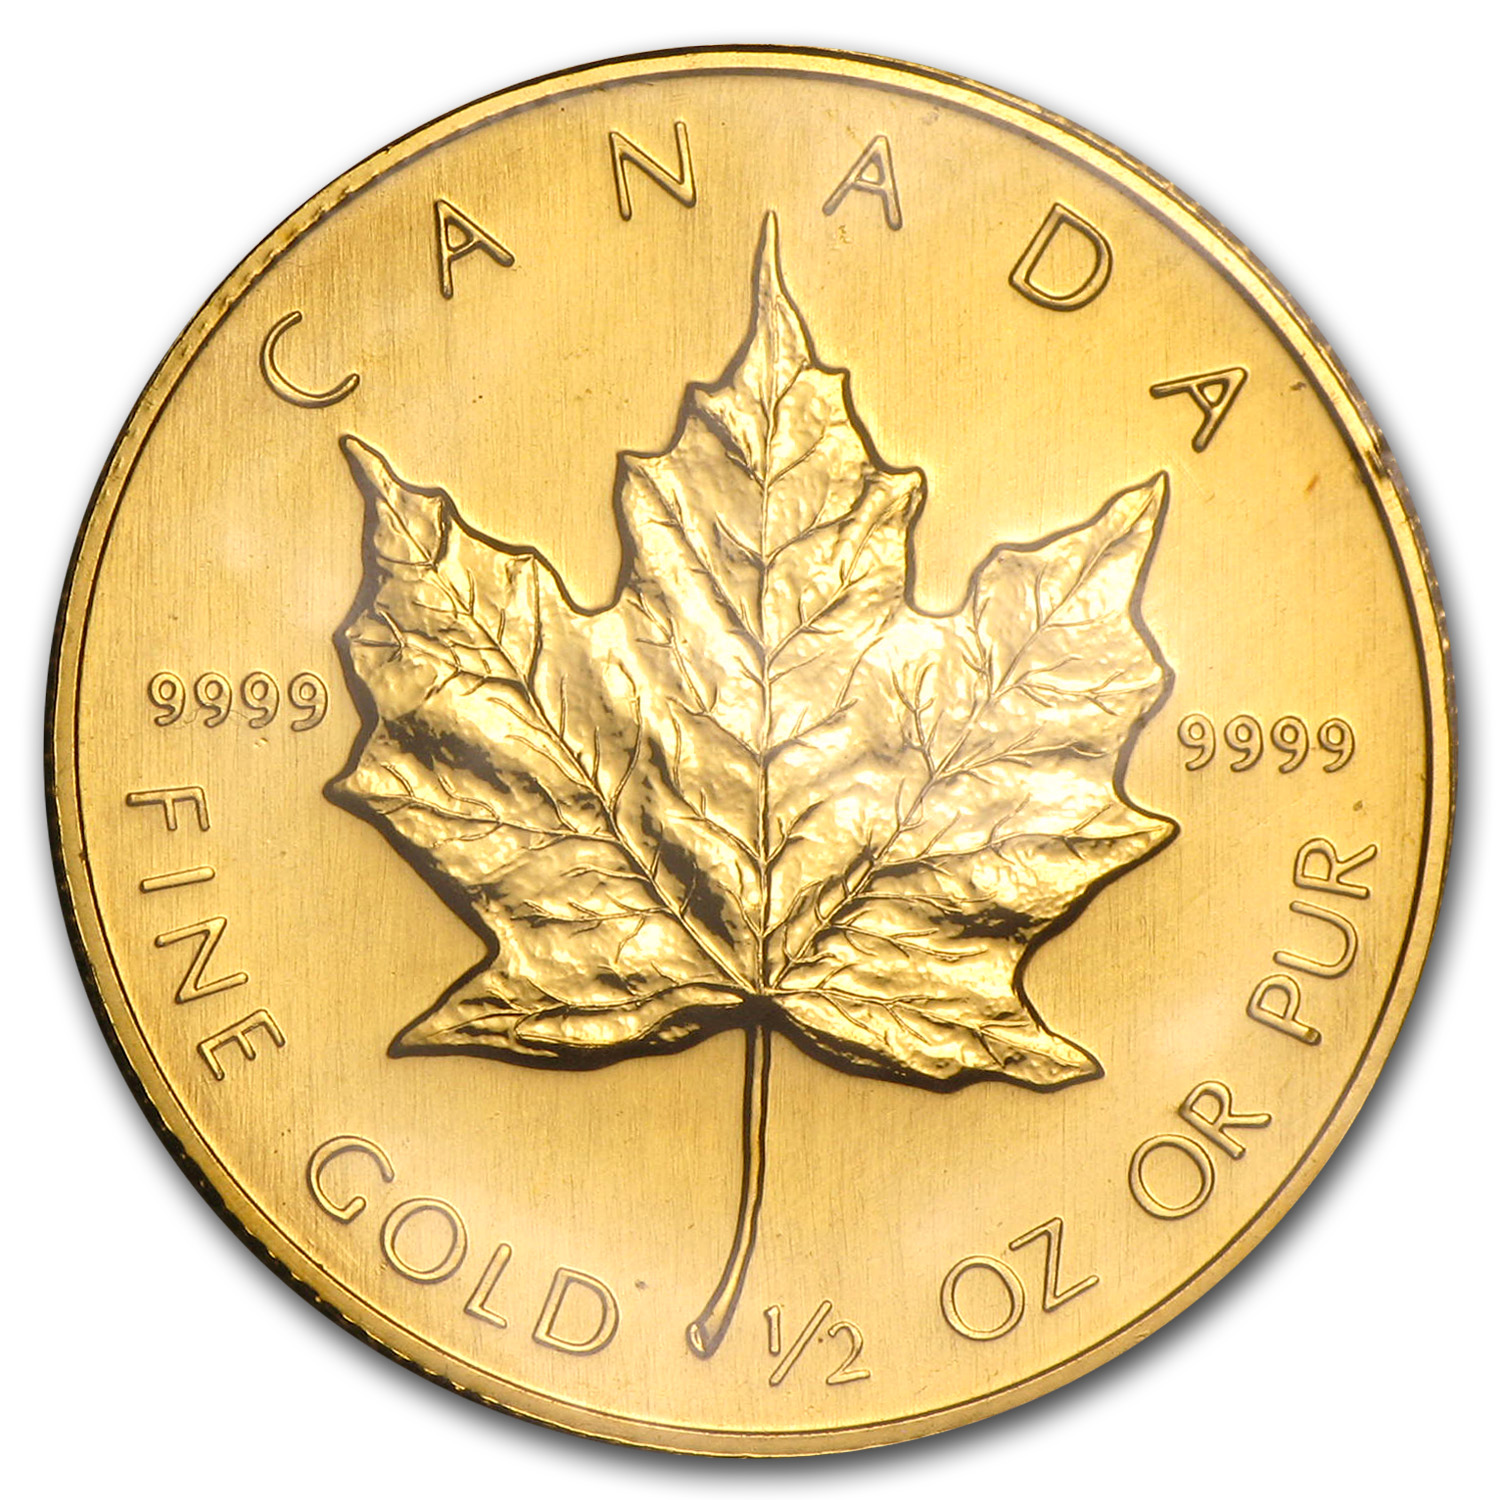 1989 1/2 oz Gold Canadian Maple Leaf - Brilliant Uncirculated